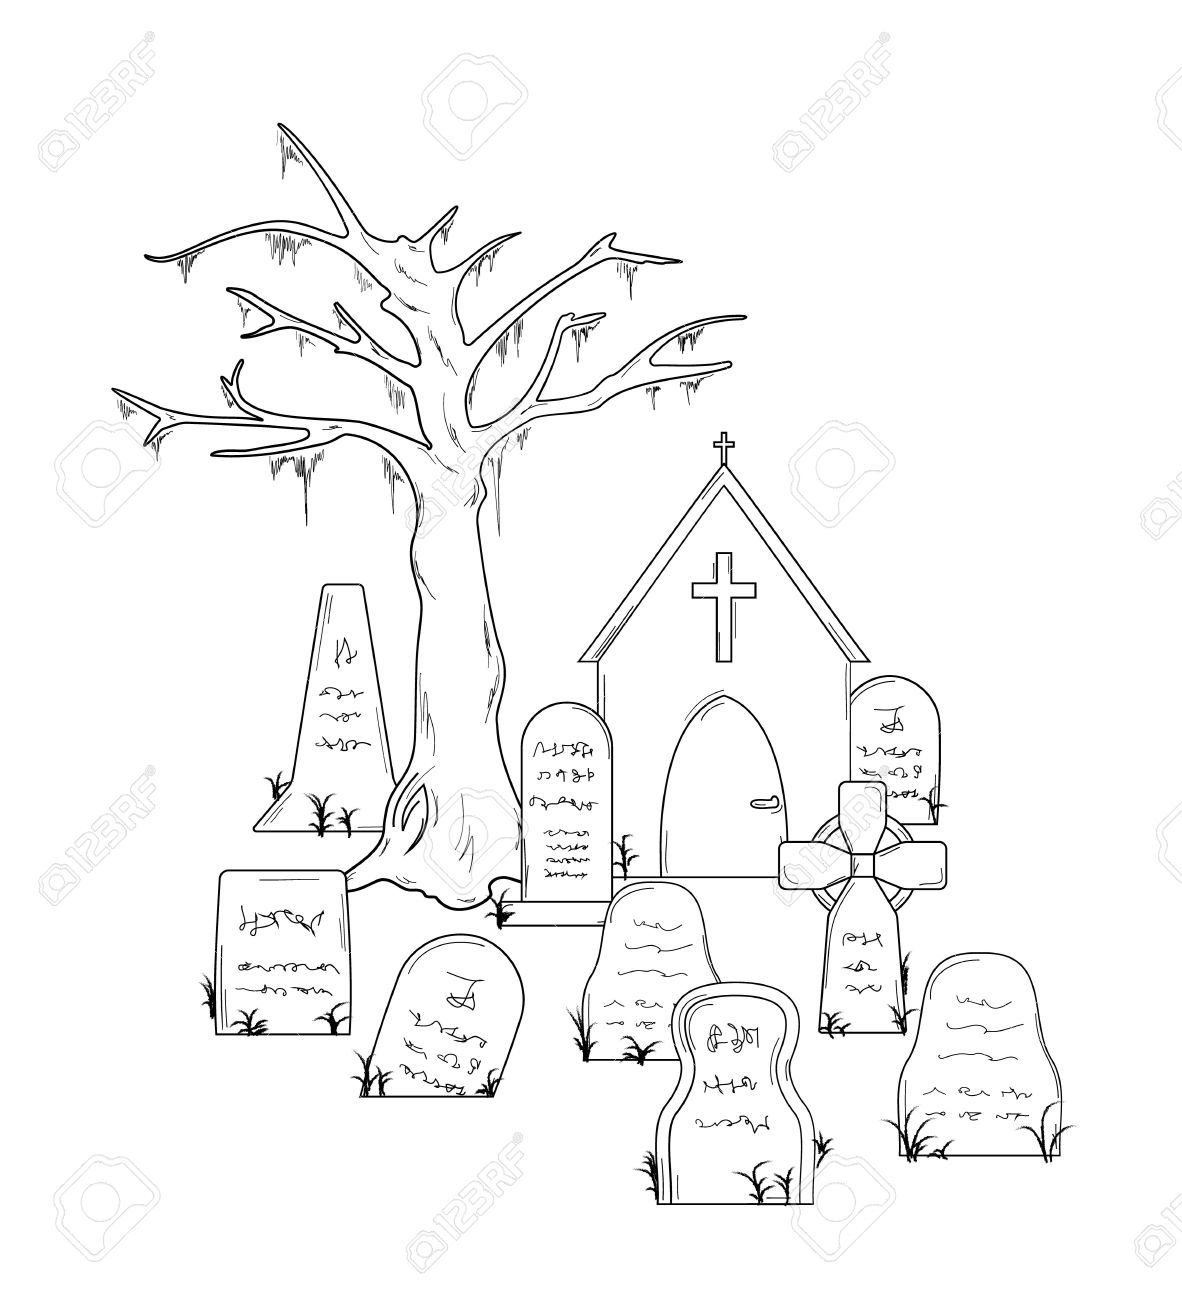 404 Cemetery free clipart.